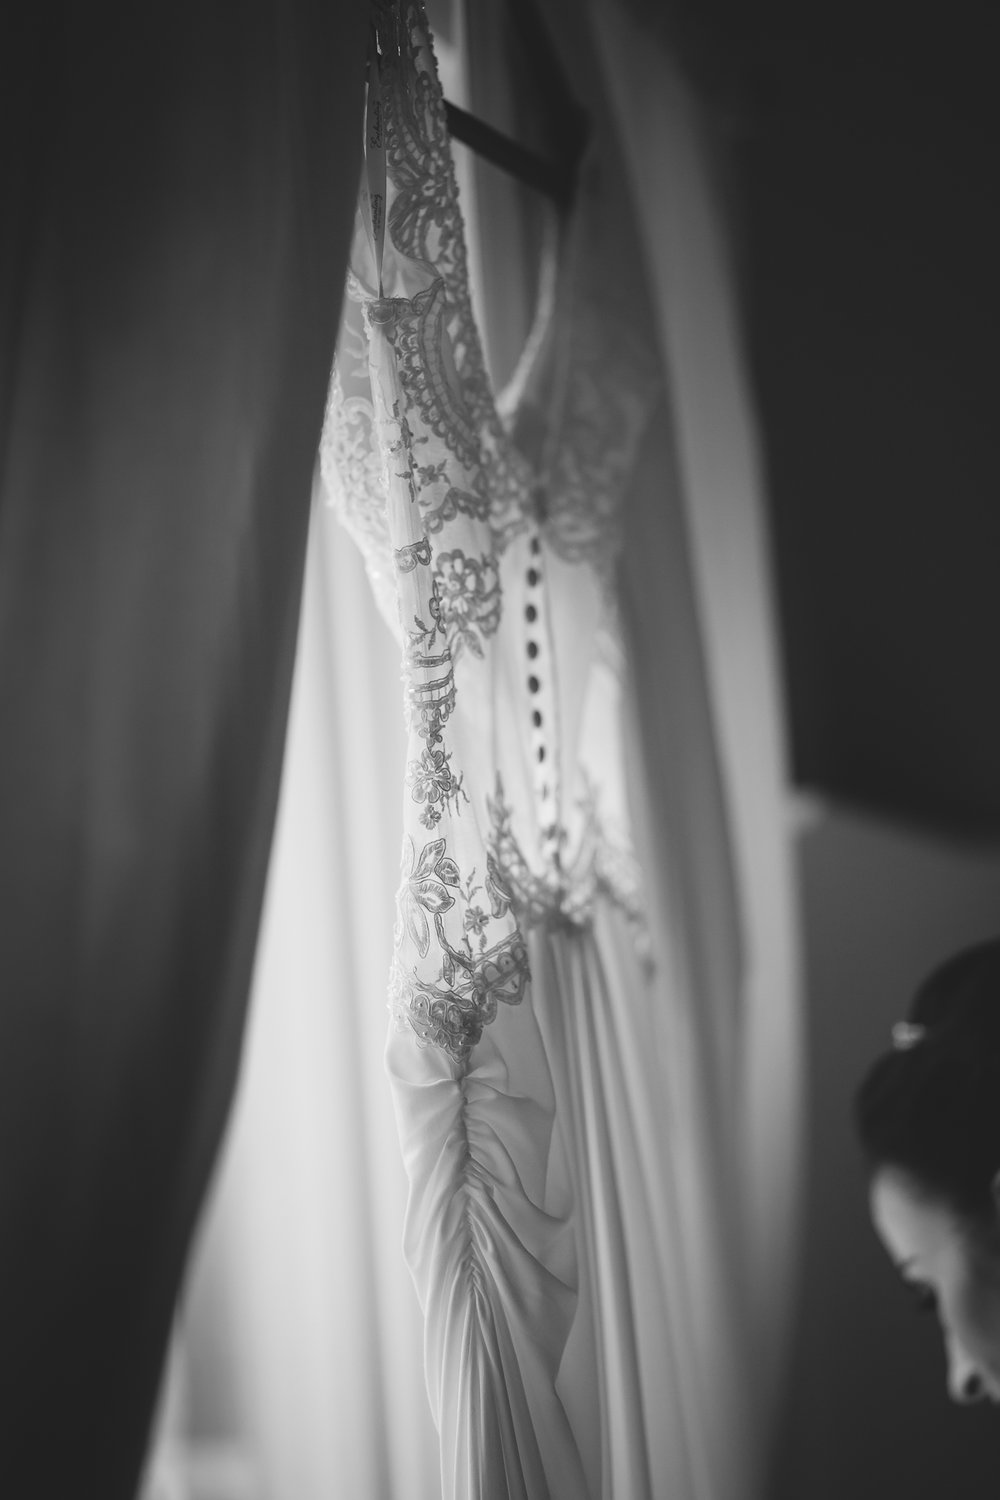 Amy D Photography- Barrie Wedding Photography- Bride Getting Ready- Muskoka Wedding Photography- Best Wedding Photographers (121 of 130).jpg